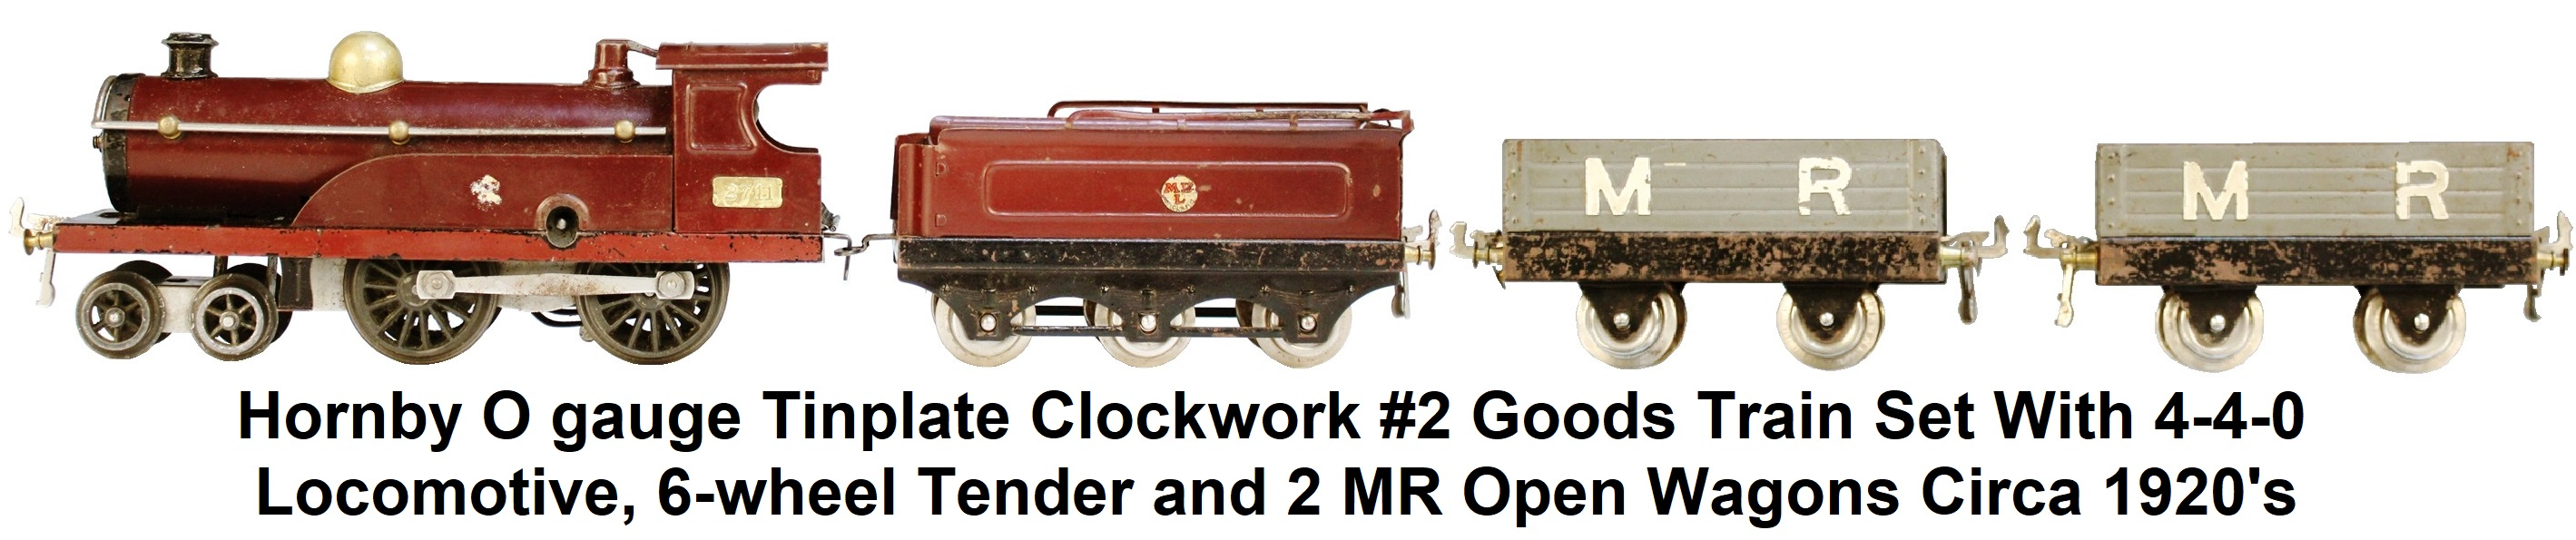 Hornby O gauge #2 Goods Set with Clockwork 4-4-0 Locomotive, 6-wheel Tender and 2 MR Open Wagons Circa 1920's